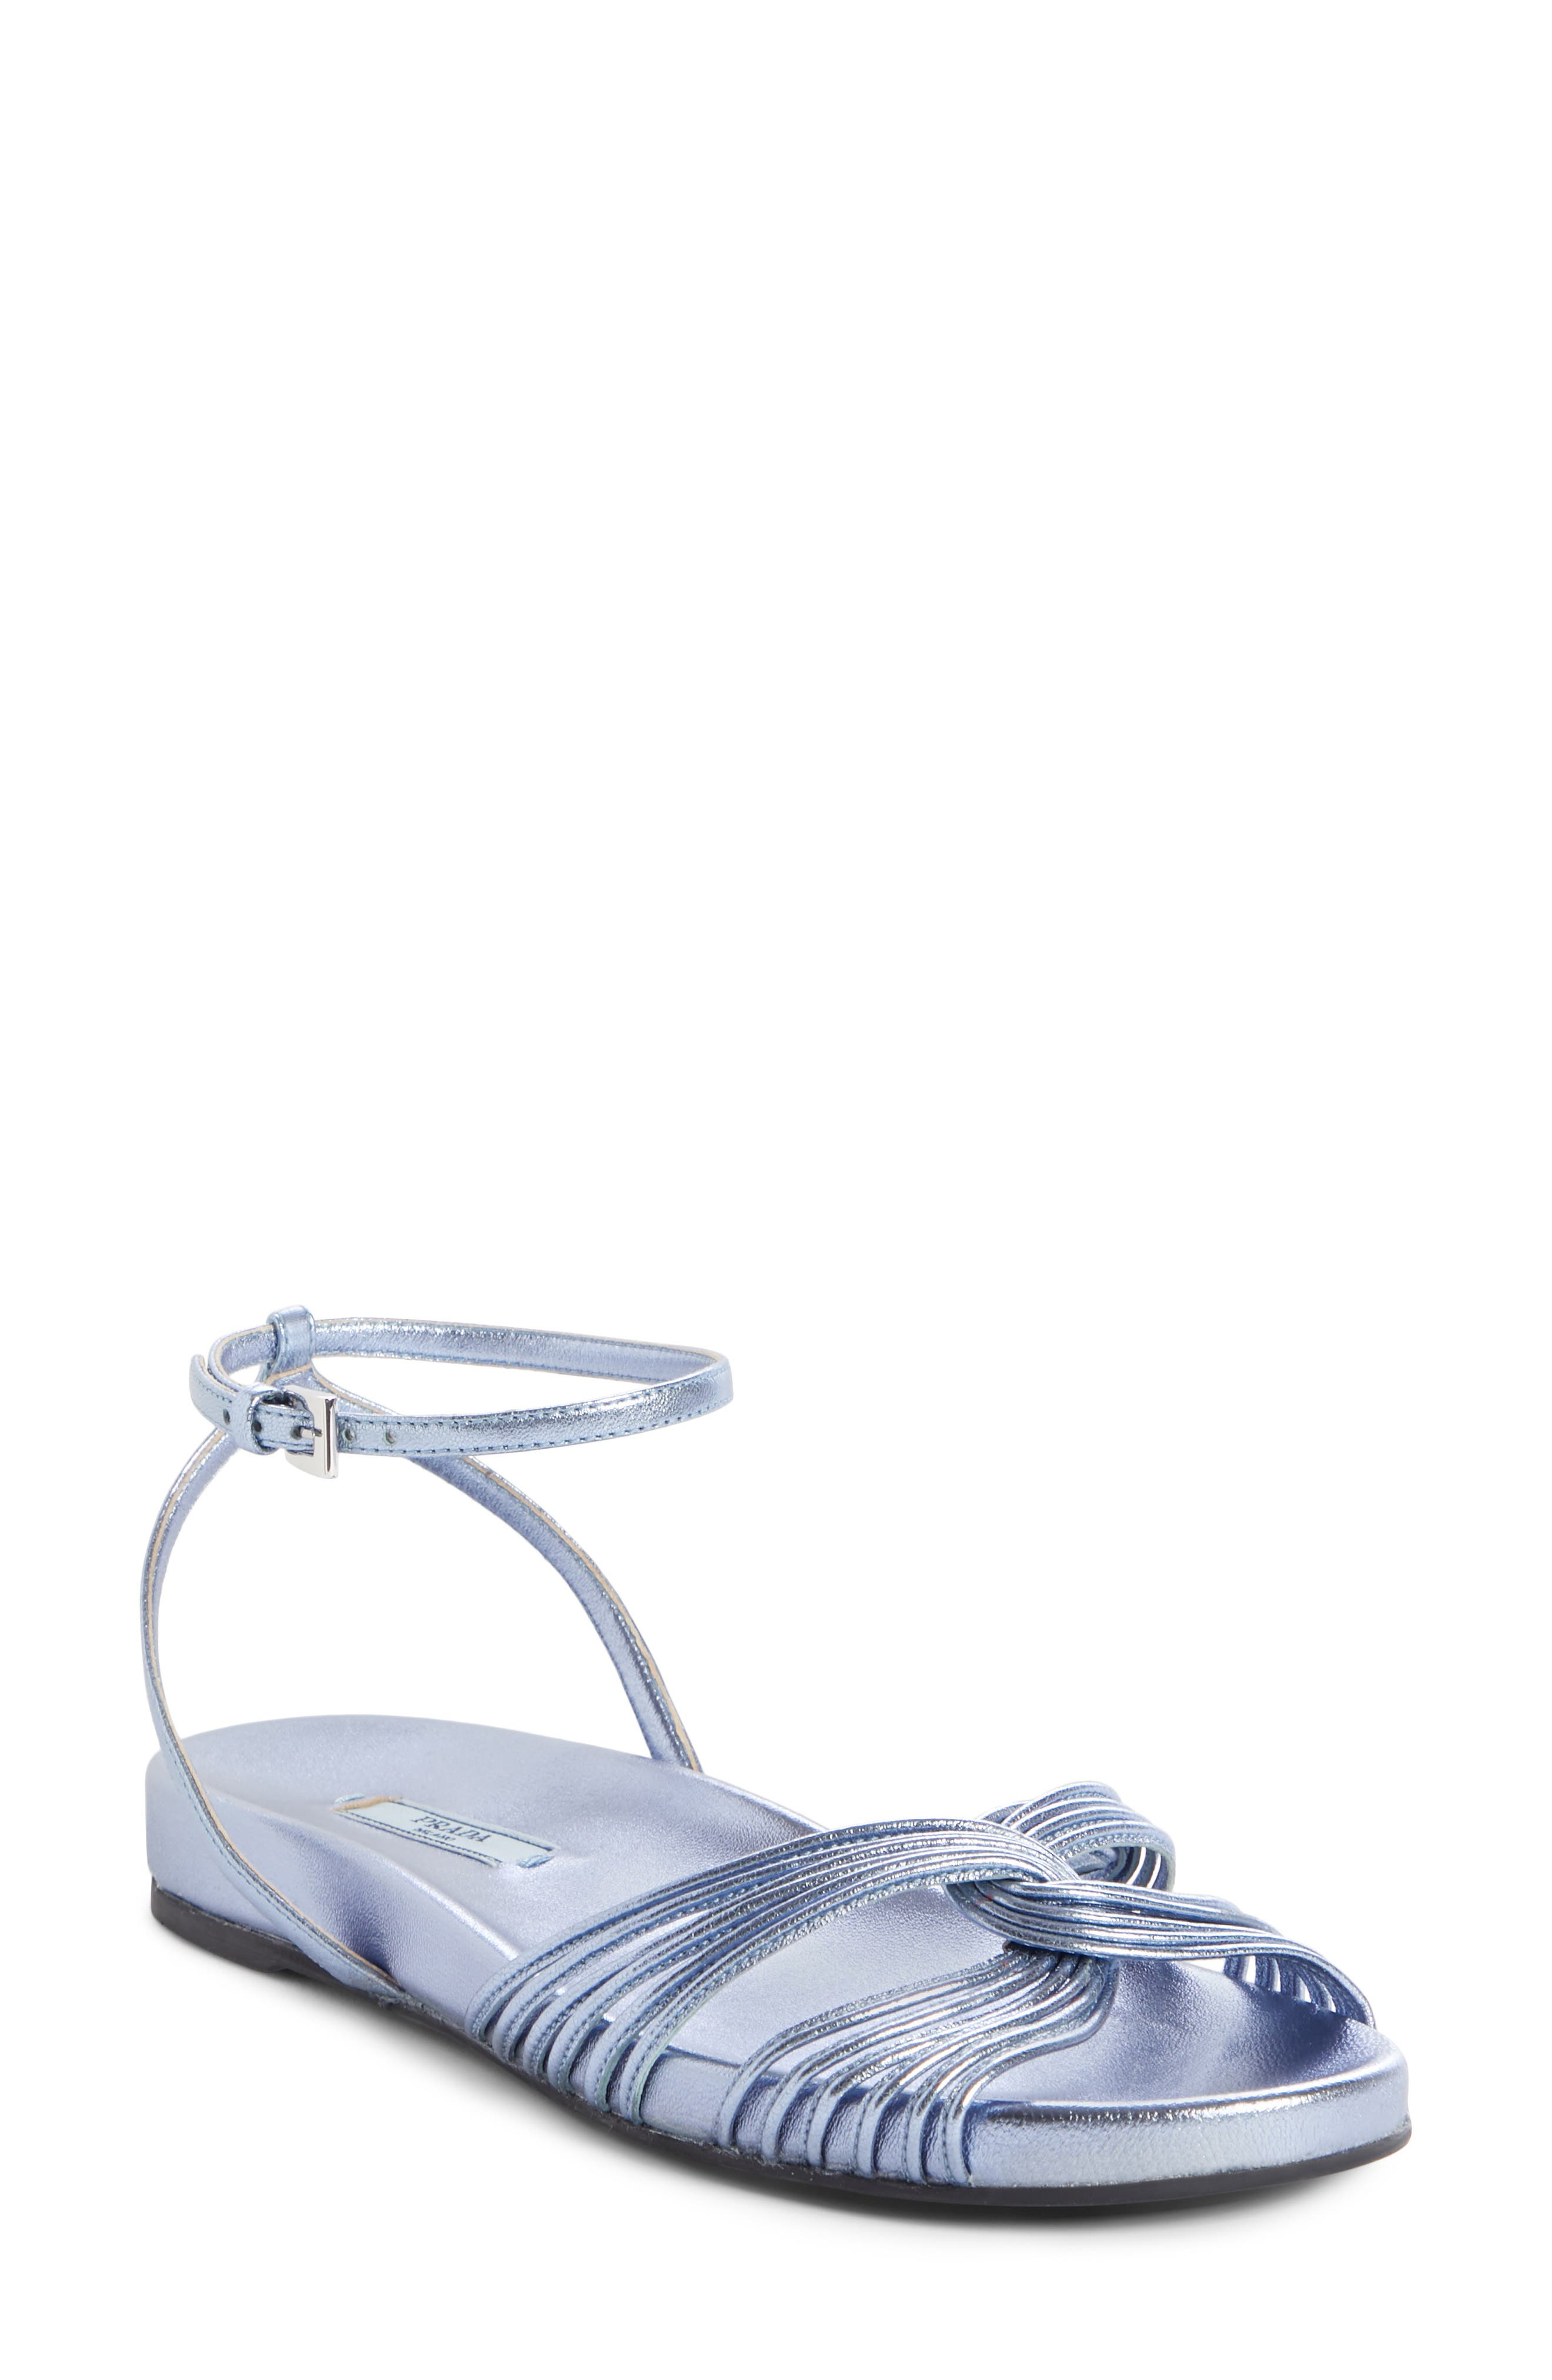 Roping Sandal, Main, color, BLUE LEATHER